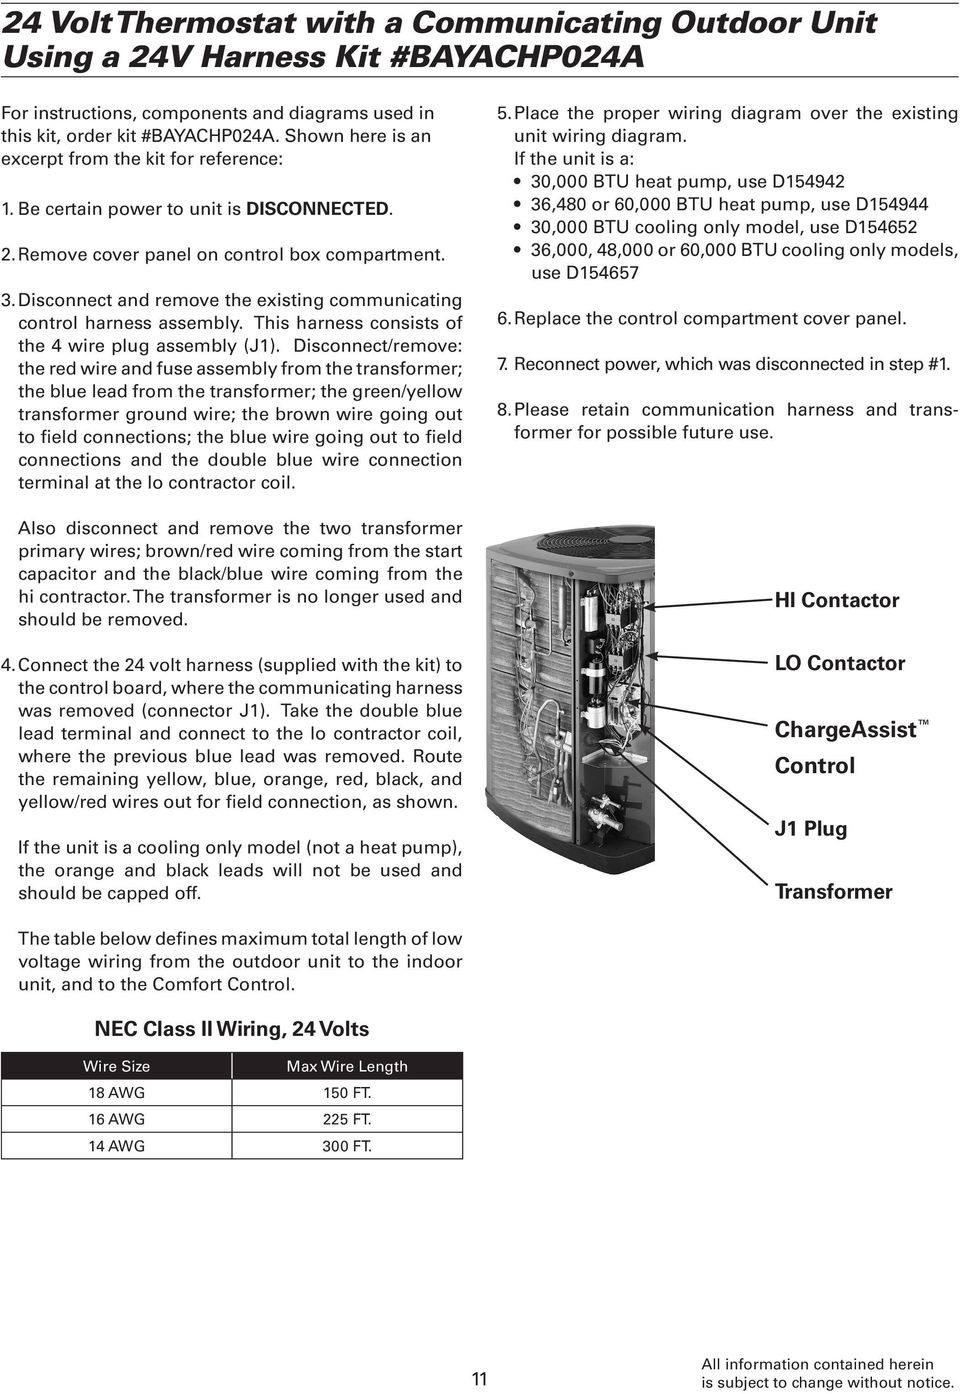 Communicating Controls Service Manual Pdf 24 Volt Coil Wiring Diagram Disconnect And Remove The Existing Control Harness Assembly This Consists Of 4